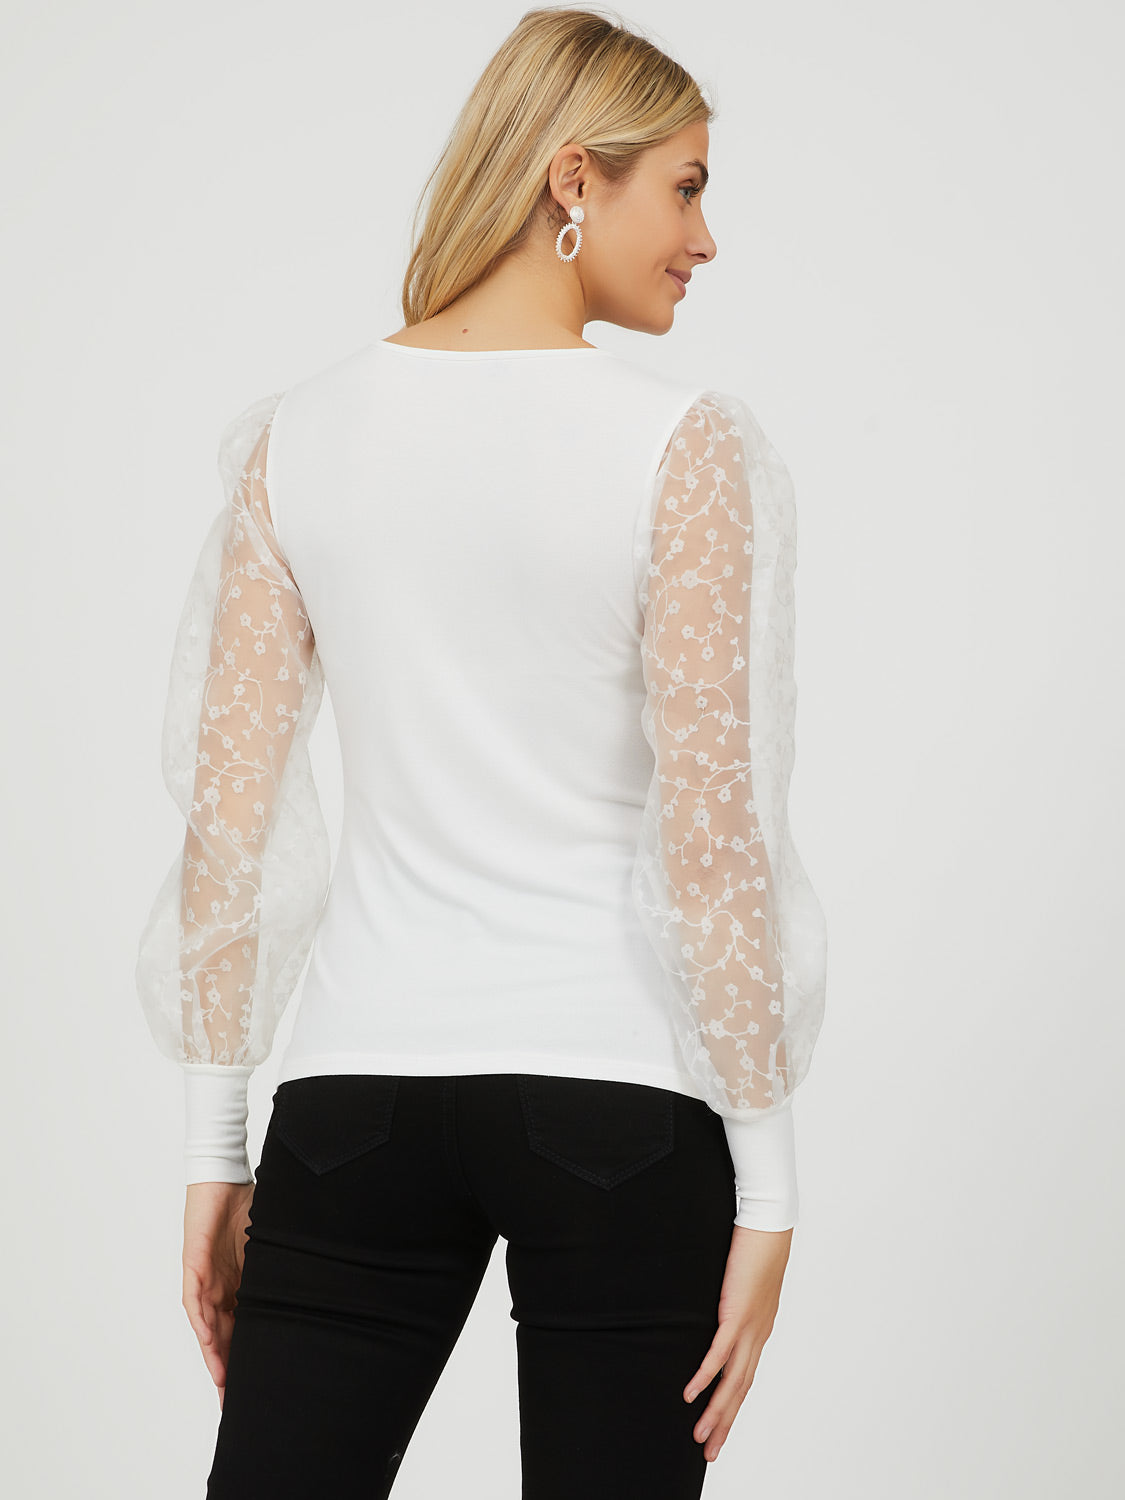 Organza Sleeve Crepe Knit Top